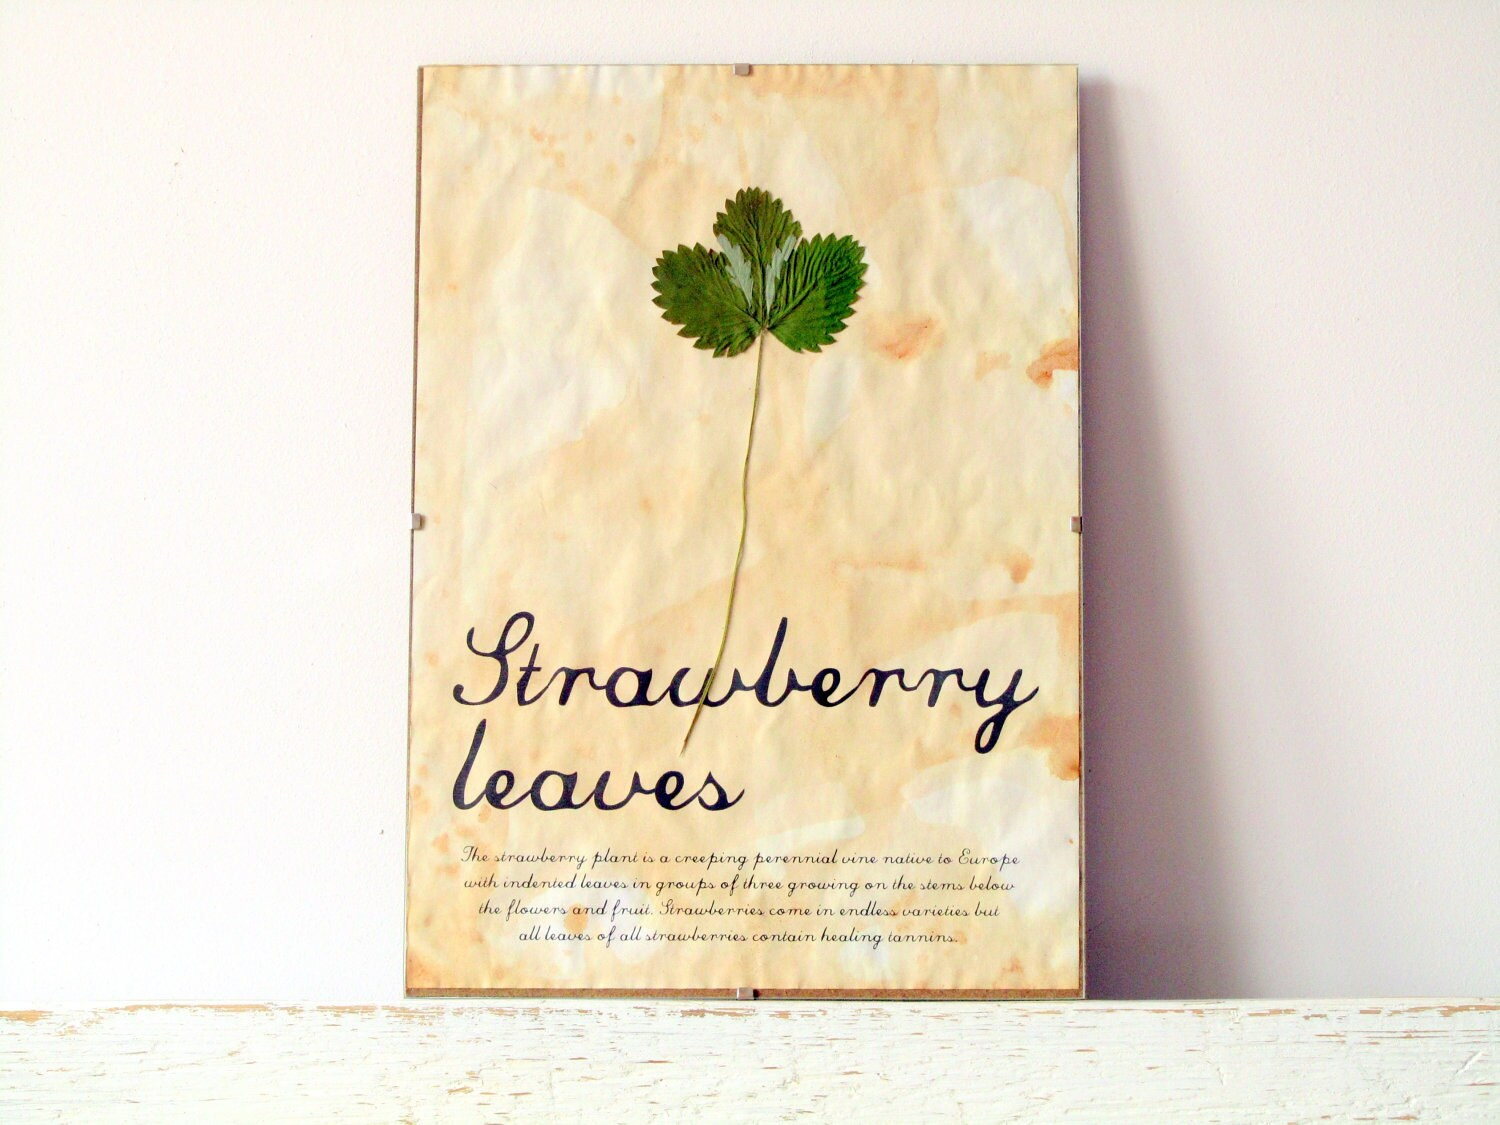 Kitchen wall decor Dried Pressed Leaf Strawberry leaves with